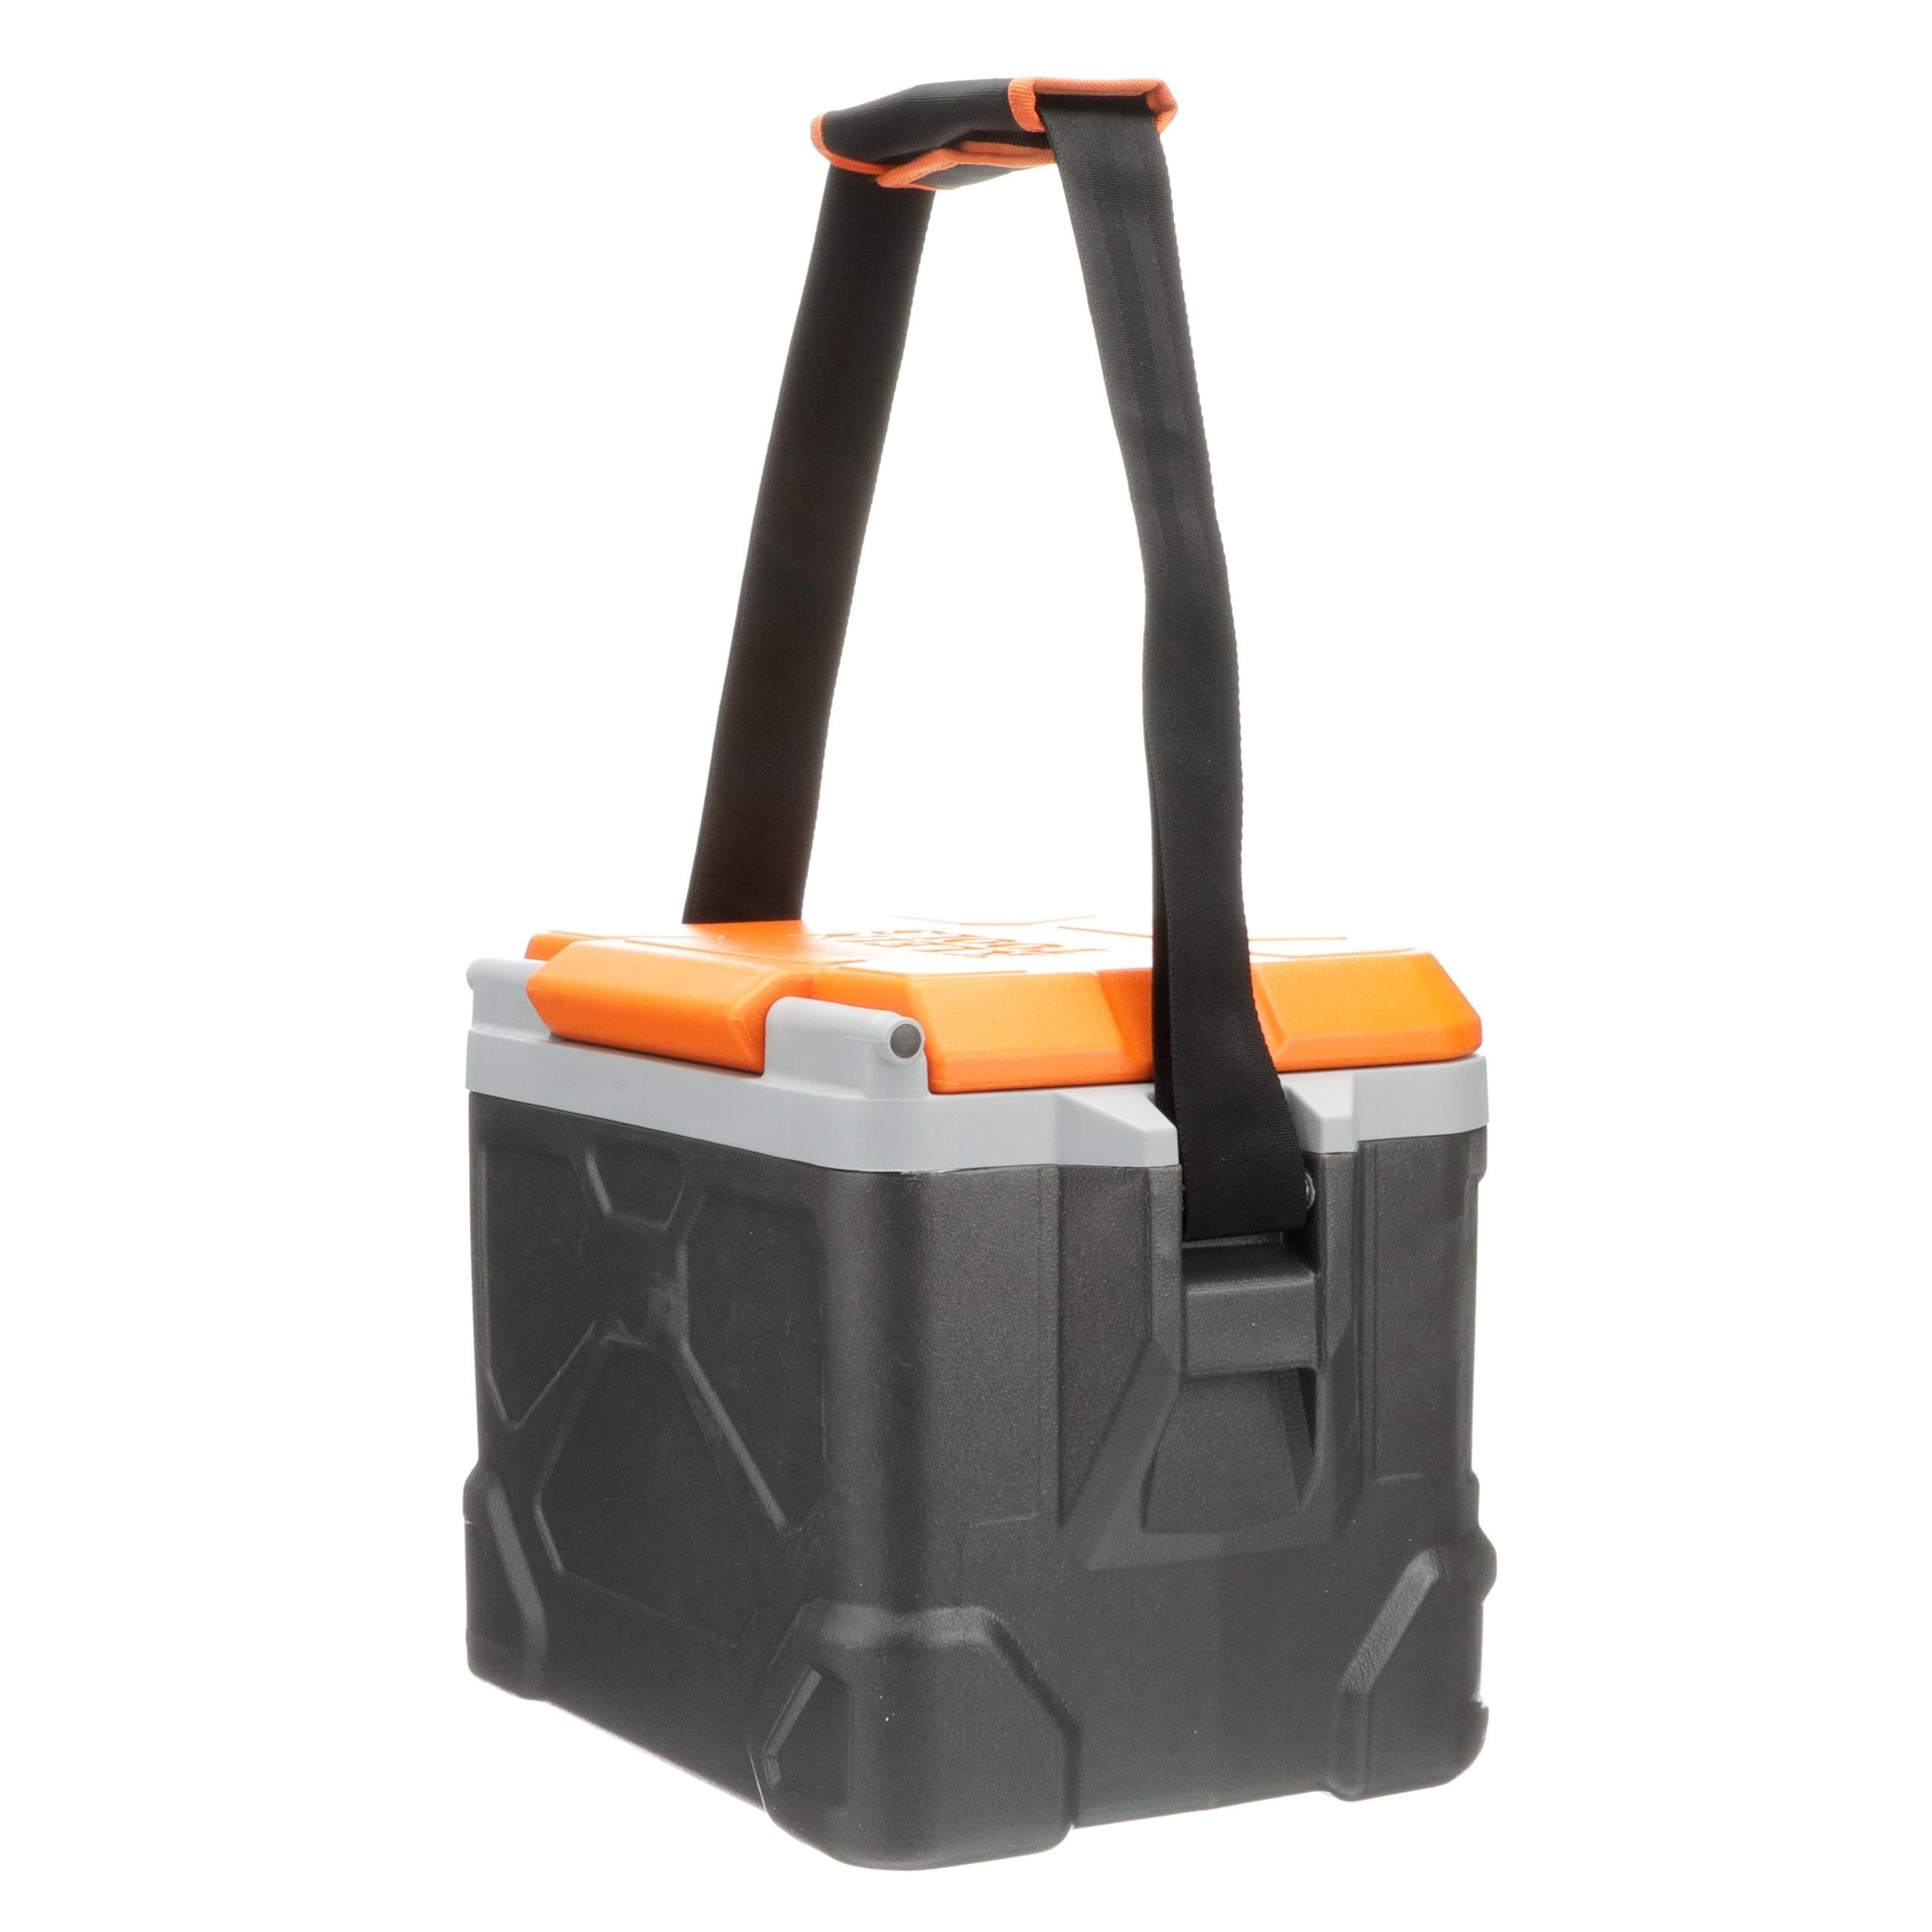 Work Cooler 17-Quart, Keep Cool 30 Hours, Seats 300 Pounds, Tradesman Pro Tough Box Klein Tools 55600 by Klein Tools (Image #8)